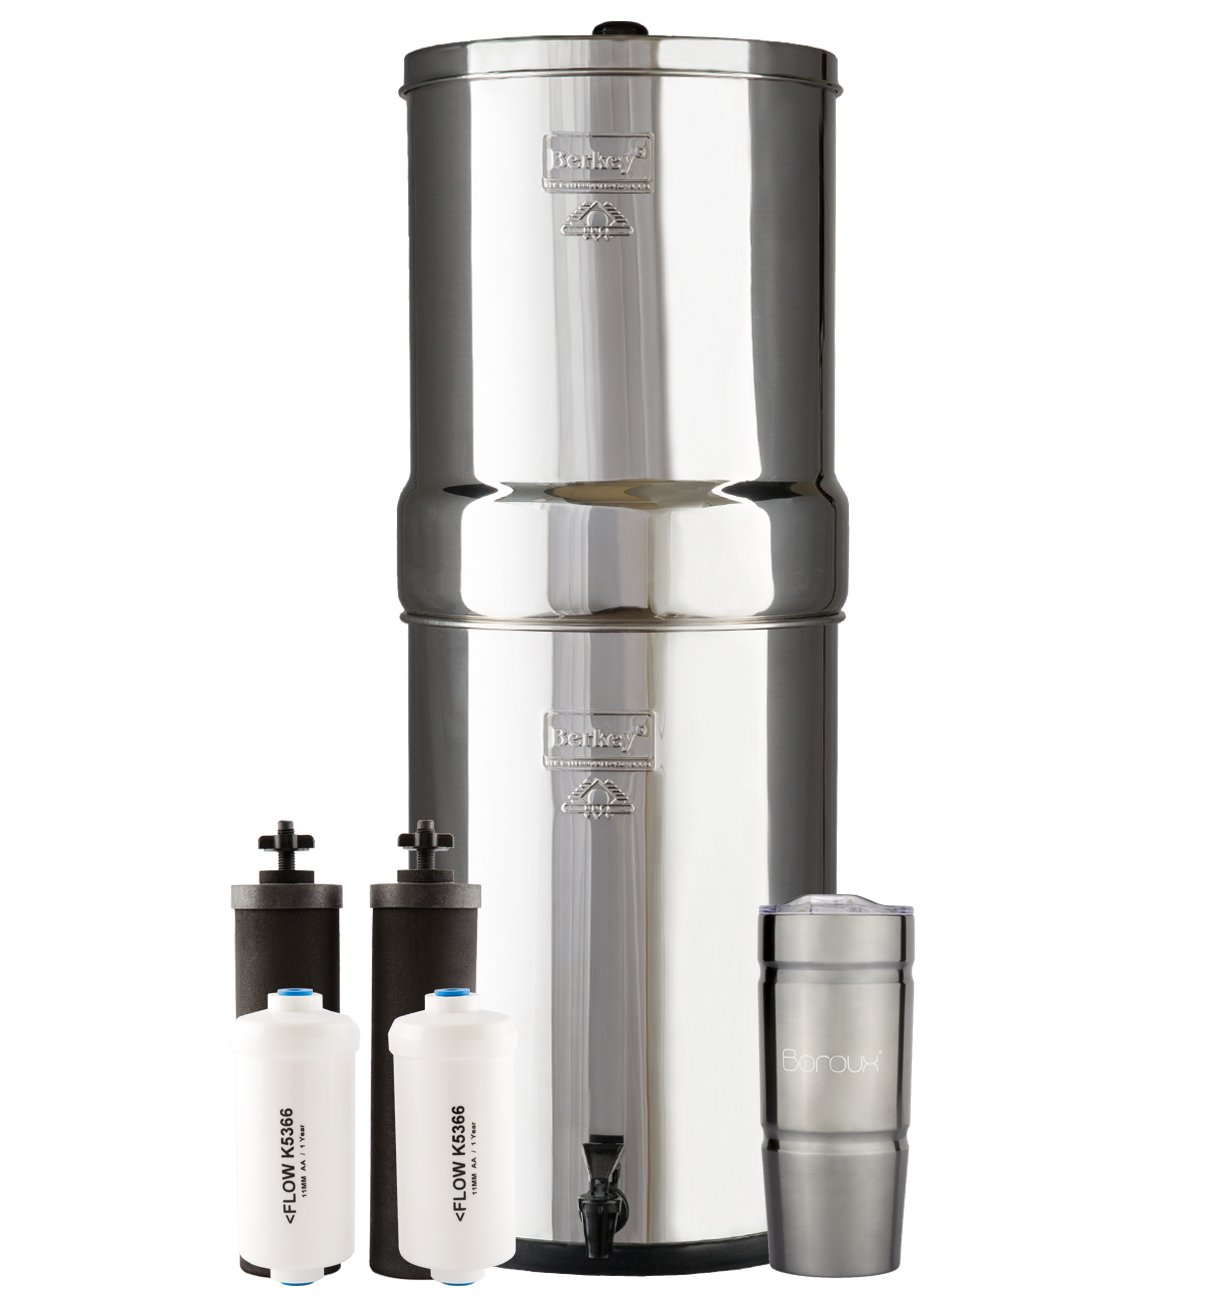 CROWN Berkey Water Filter System with 2 Black Purifier Filters (6 Gallons) Bundled with 1 set of Fluoride (PF2) Filters and 1 Boroux Double Walled 20 oz Stainless Steel Tumbler Cup